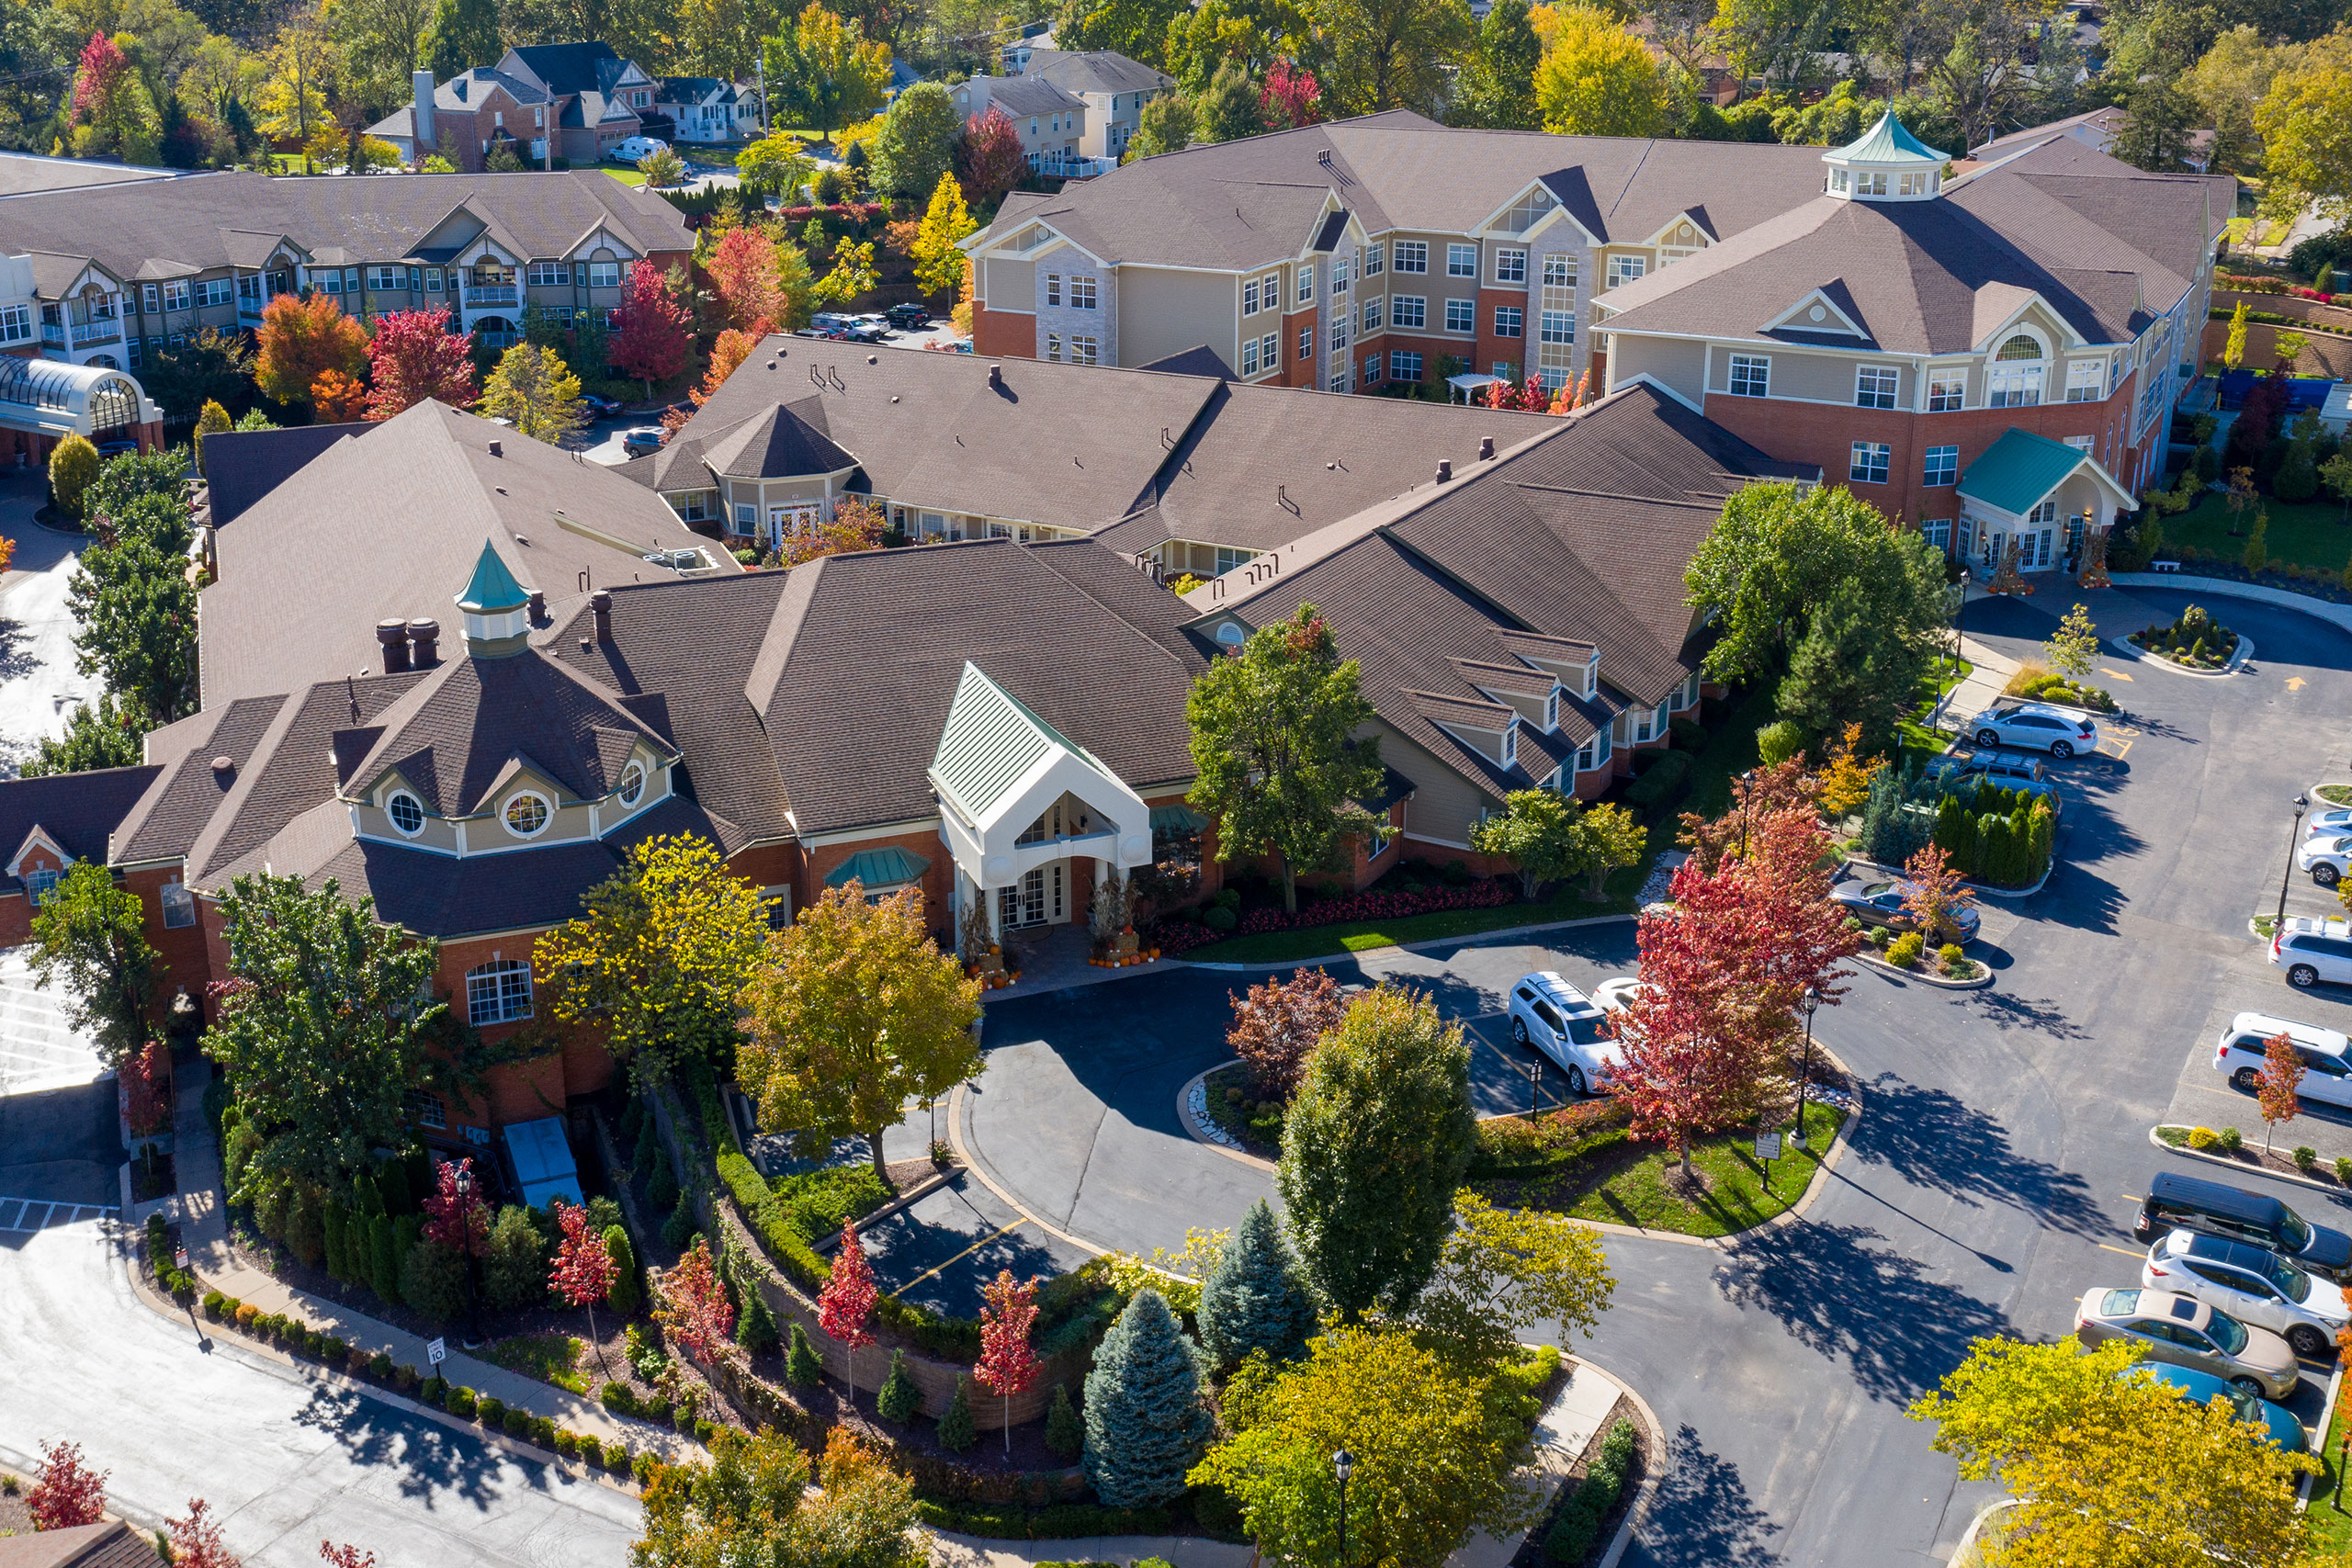 Aerial view of the McKnight Place Assisted Living and Memory Care buildings.